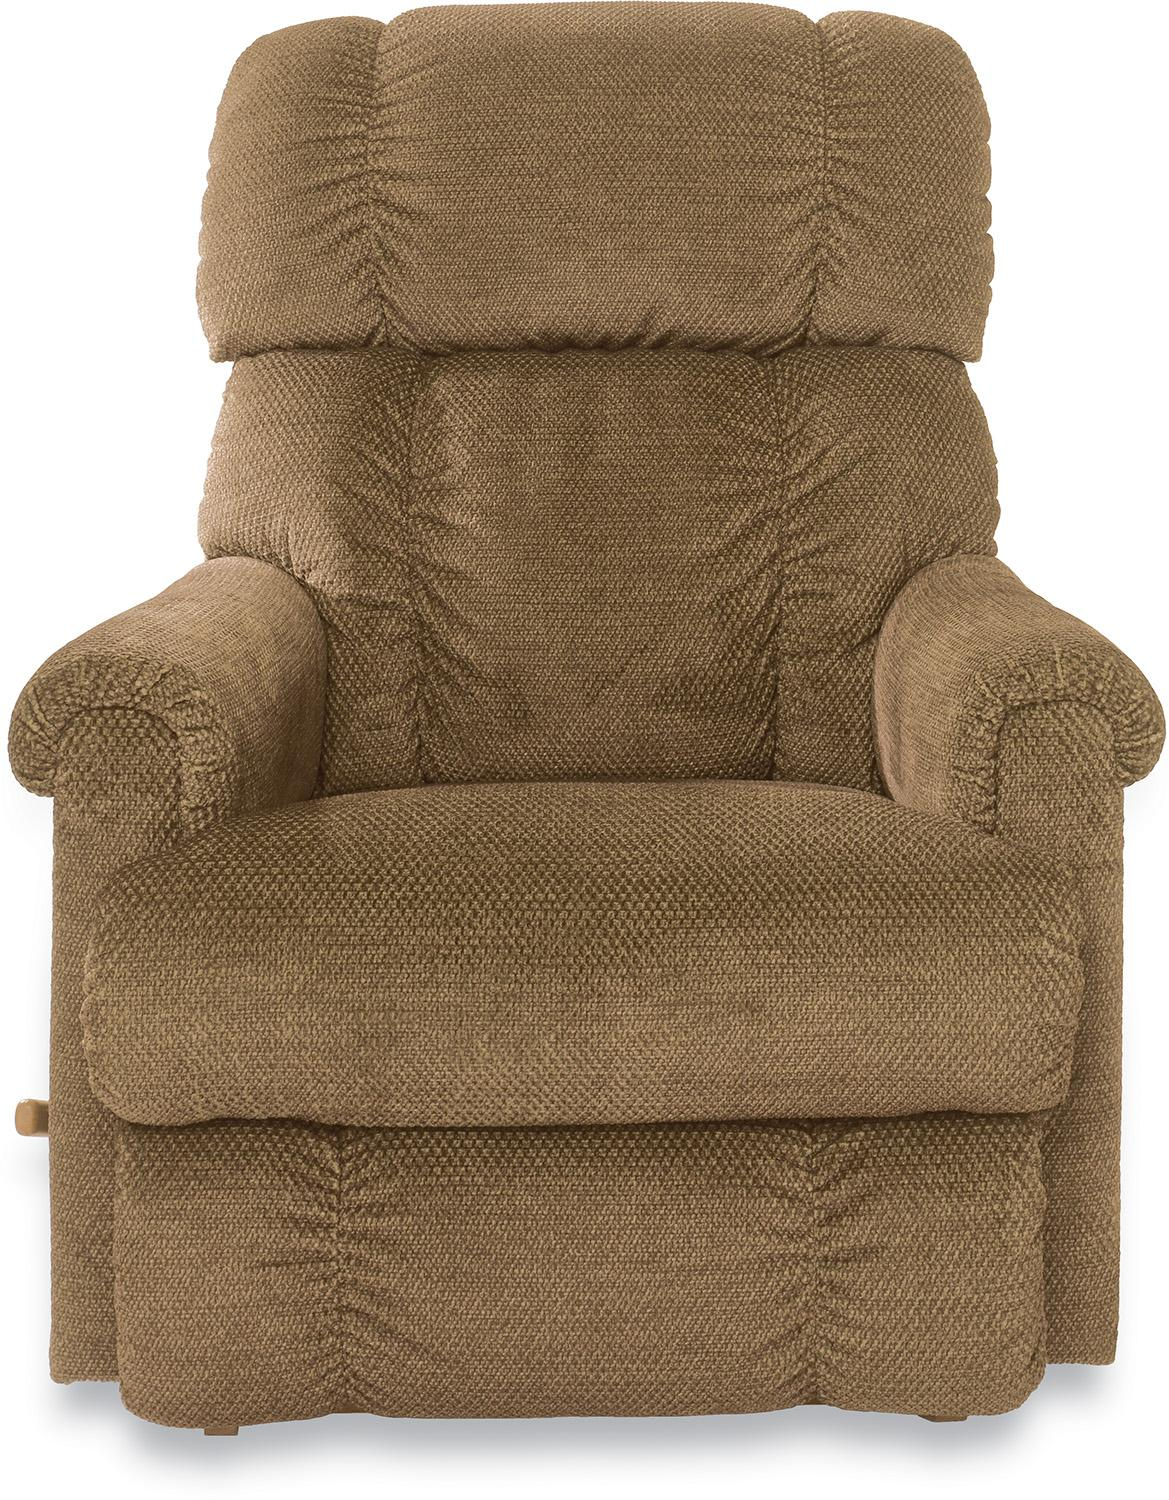 Pinnacle Rocking Recliner by La-Z-Boy at Walker's Furniture